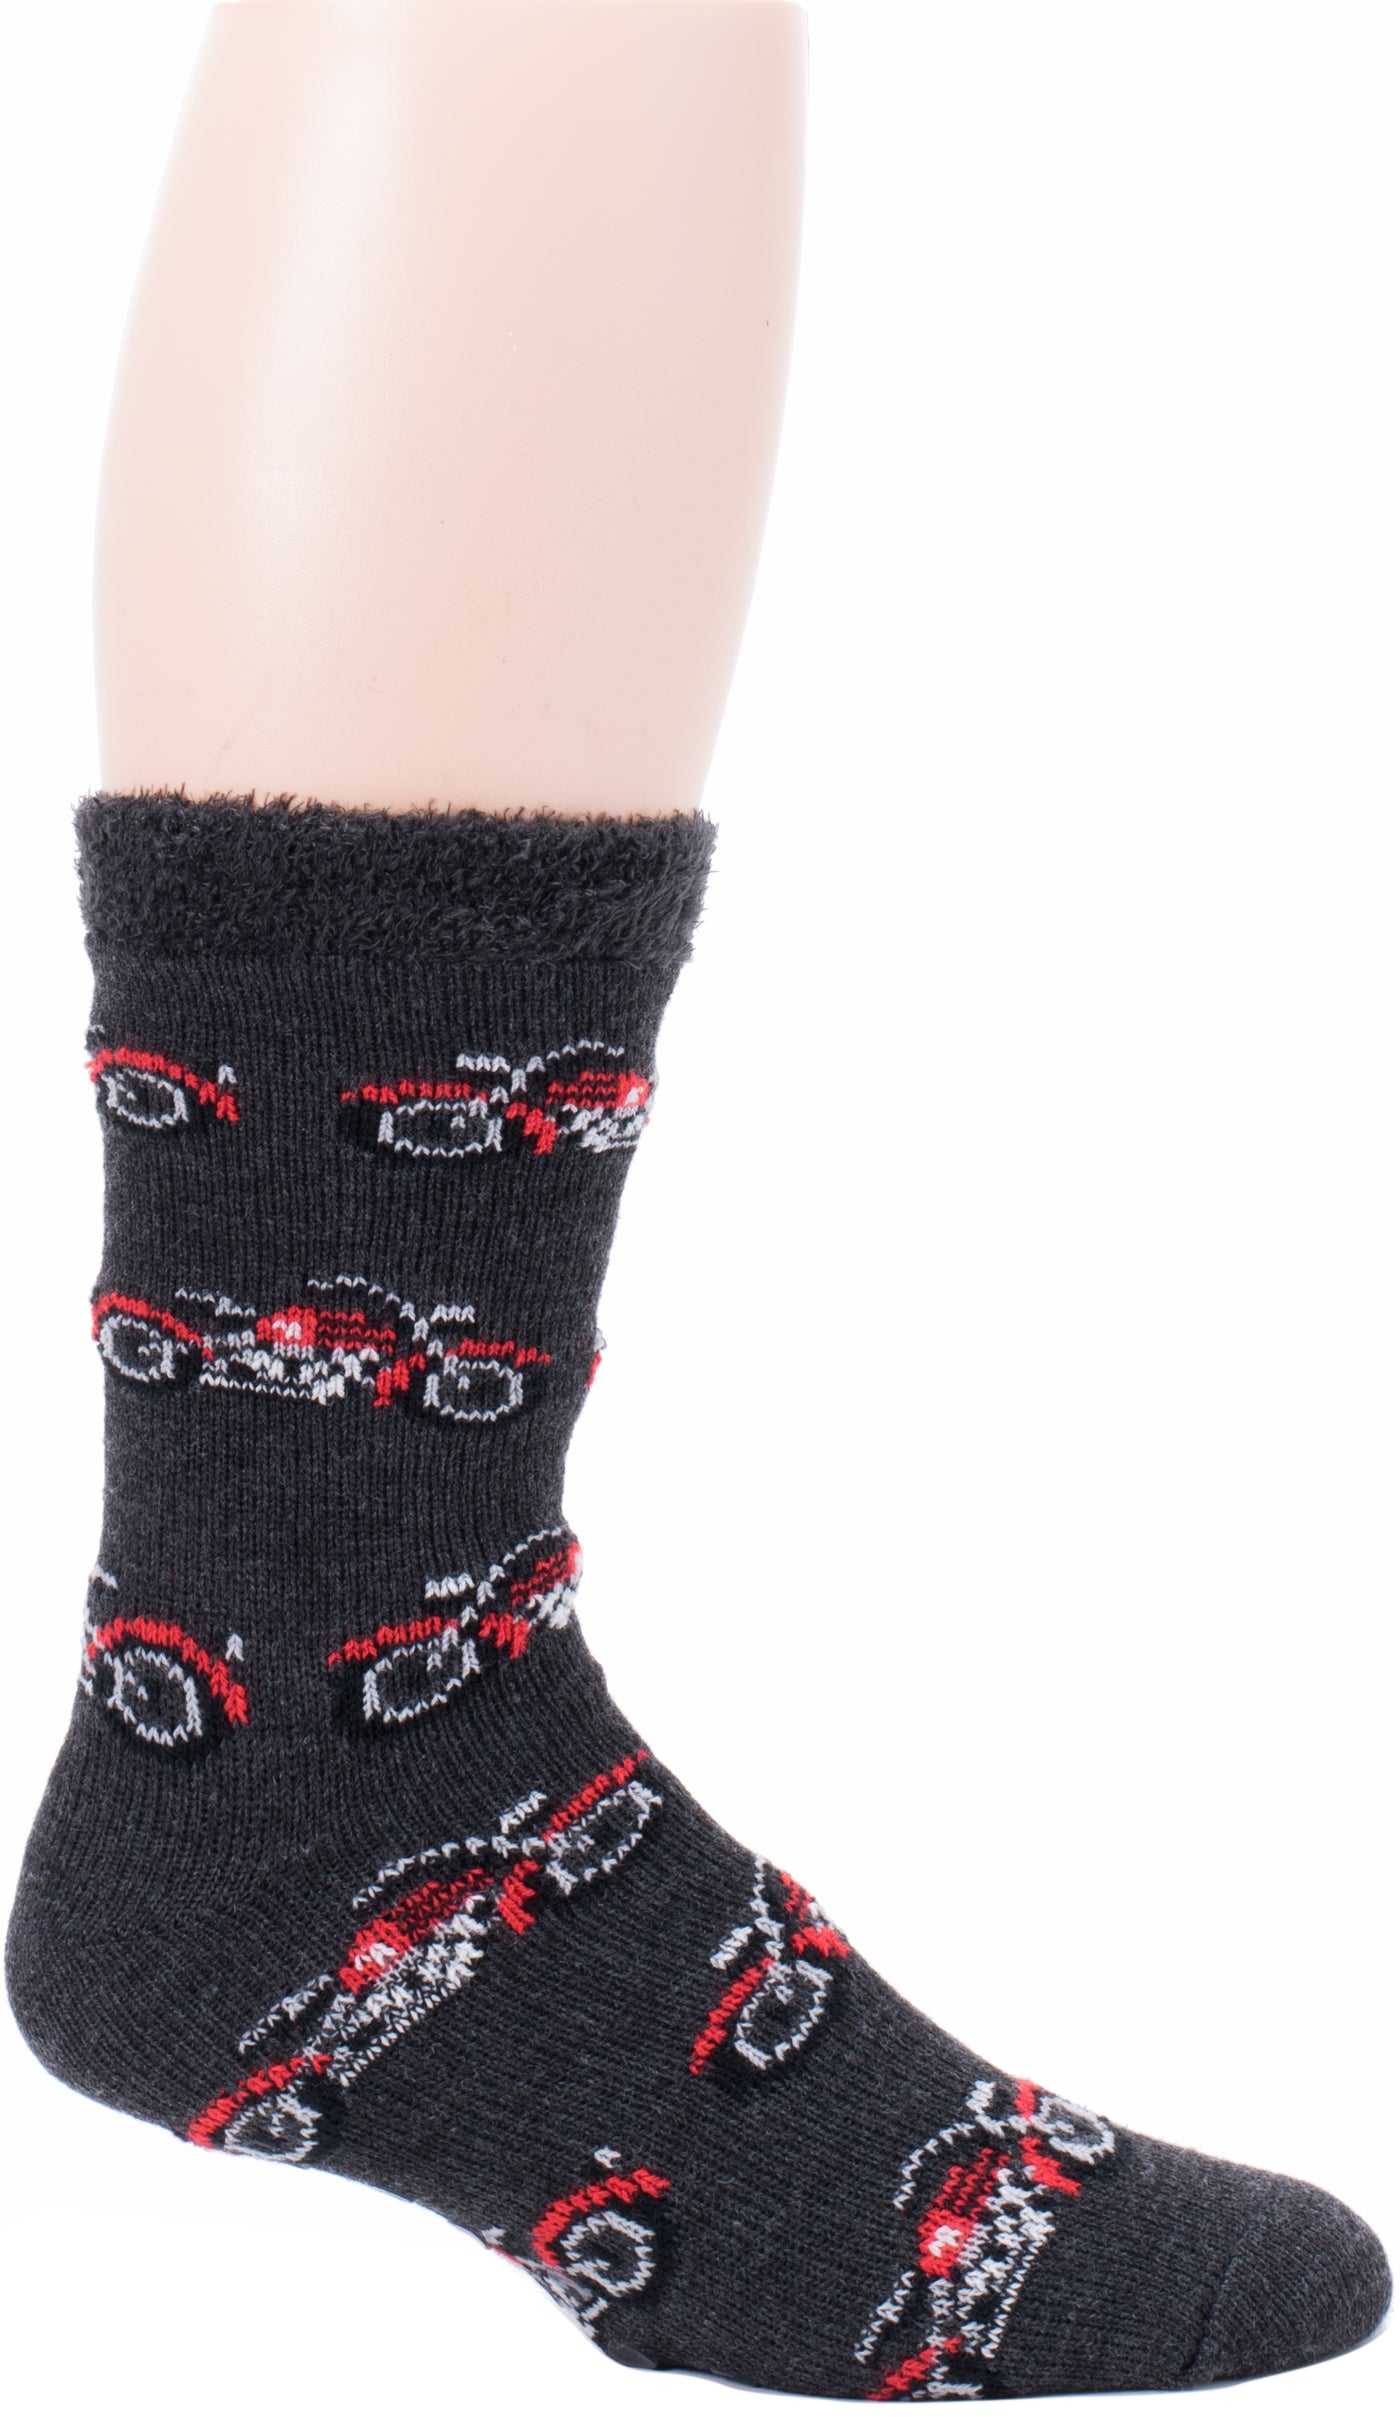 df0f73bdb680 Davco Mens Motorcycle Slipper Socks start with a Black background. The  Motorcycle is Red